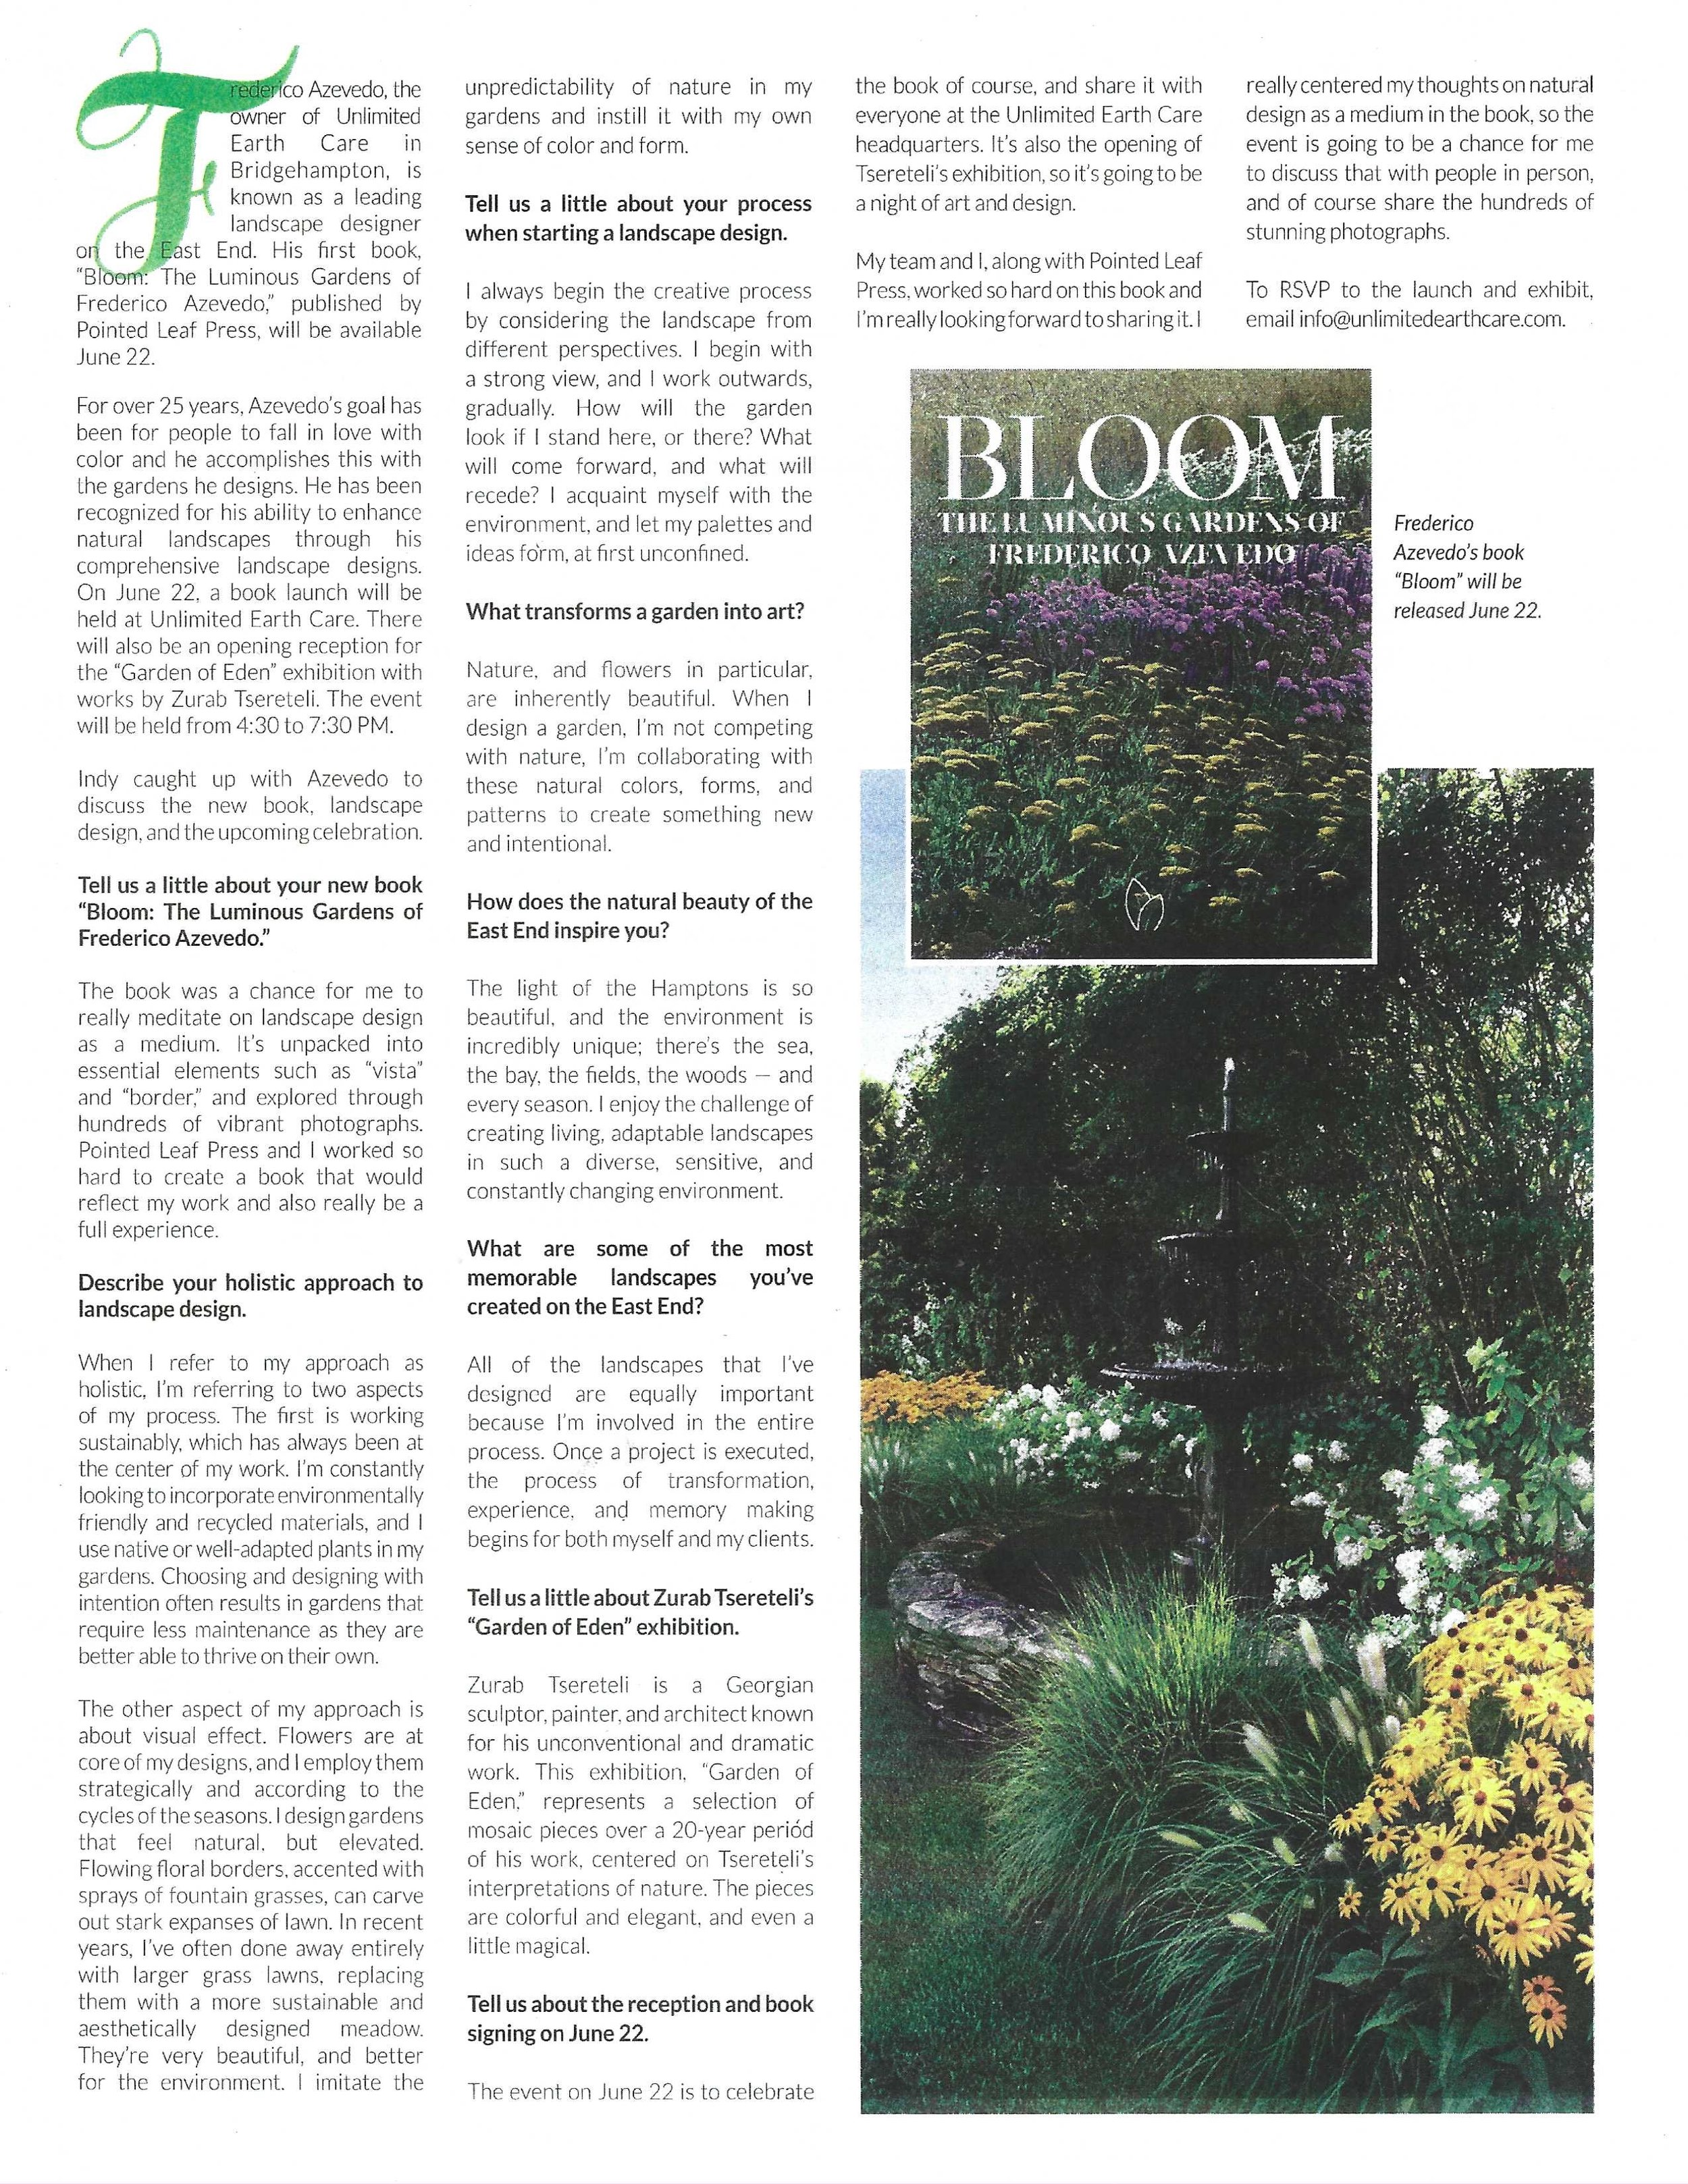 64 The Independent - Home & Garden_May 2019 4.jpg